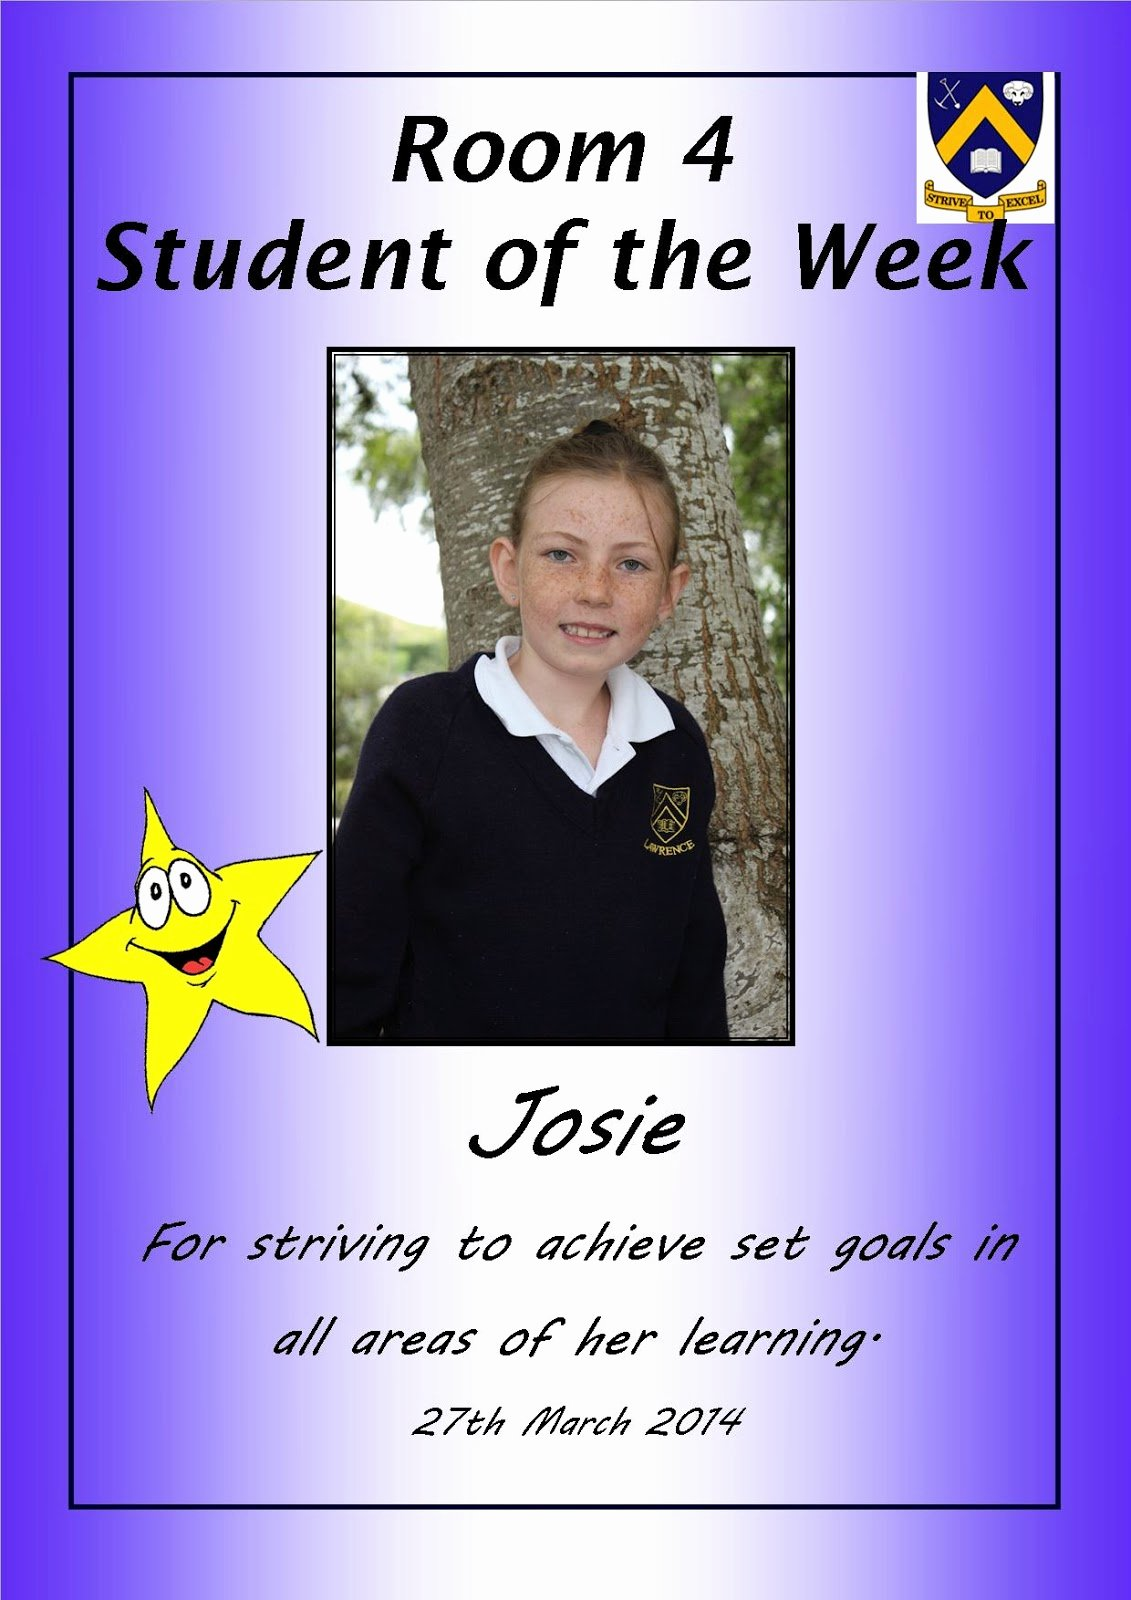 Student Of the Week Template Beautiful Room 4 Lawrence area School Student Of the Week Josie